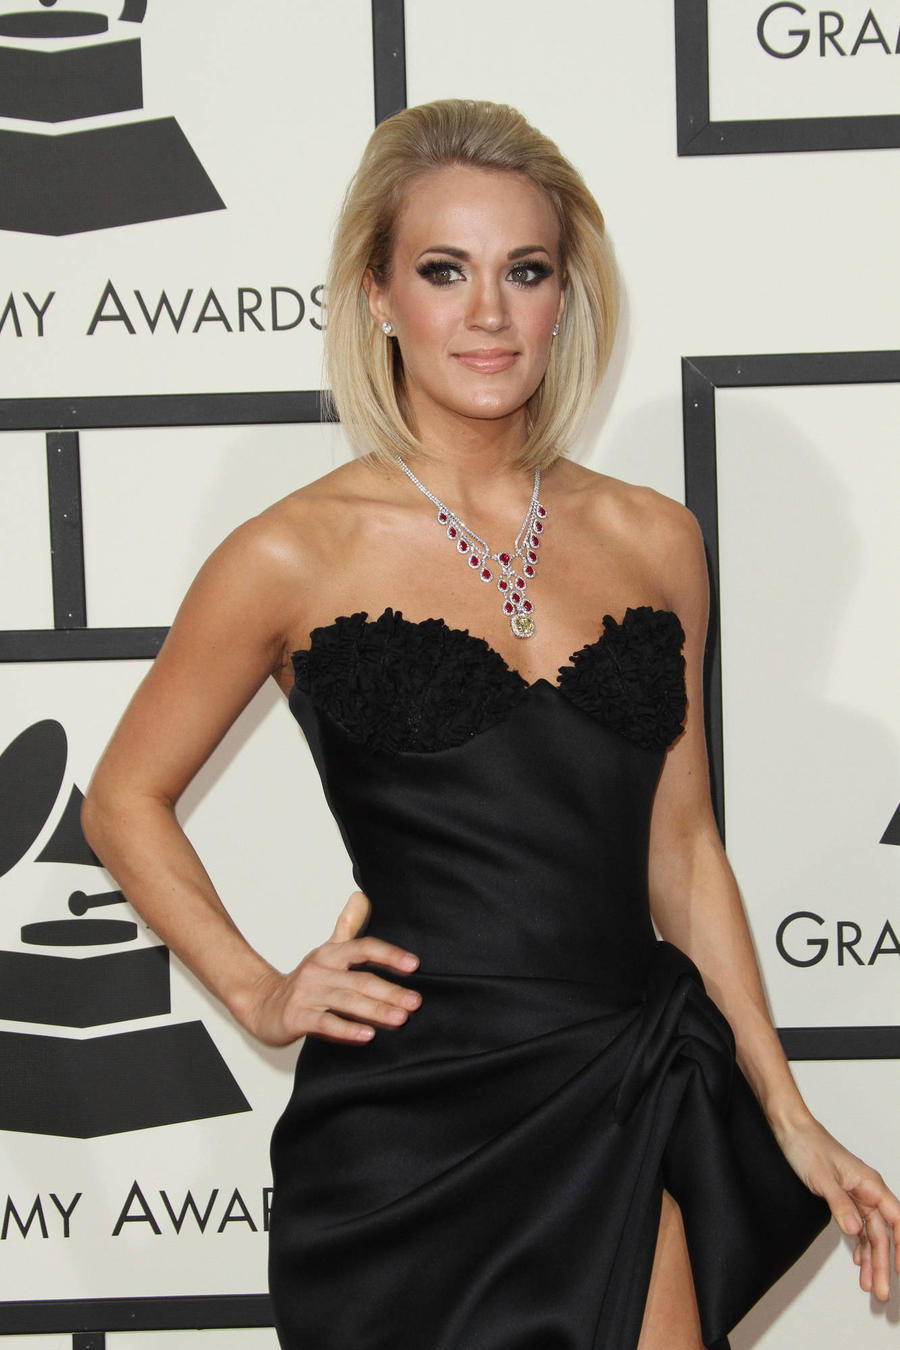 carrie underwood dating list Carrie underwood always loves taking a fashion risk, but her latest look left very little to the imagination find out more about her look at shefinds.